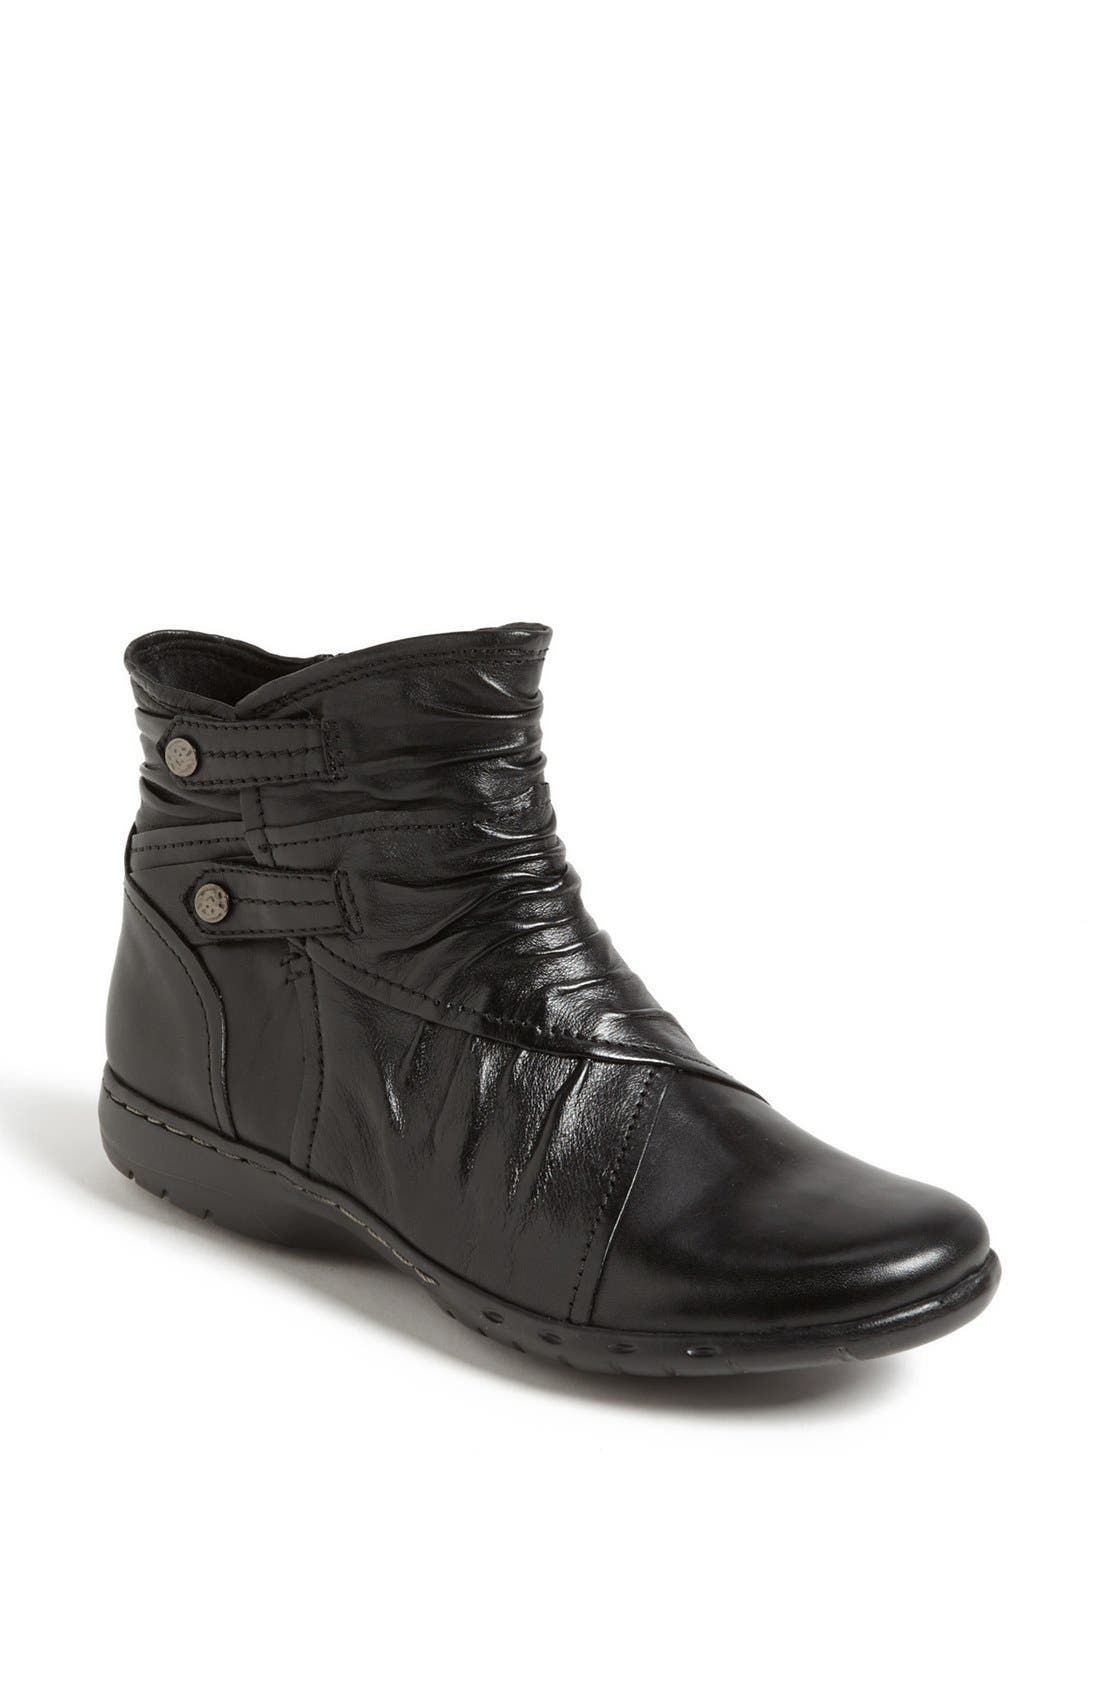 'Pandora' Boot,                             Main thumbnail 1, color,                             BLACK